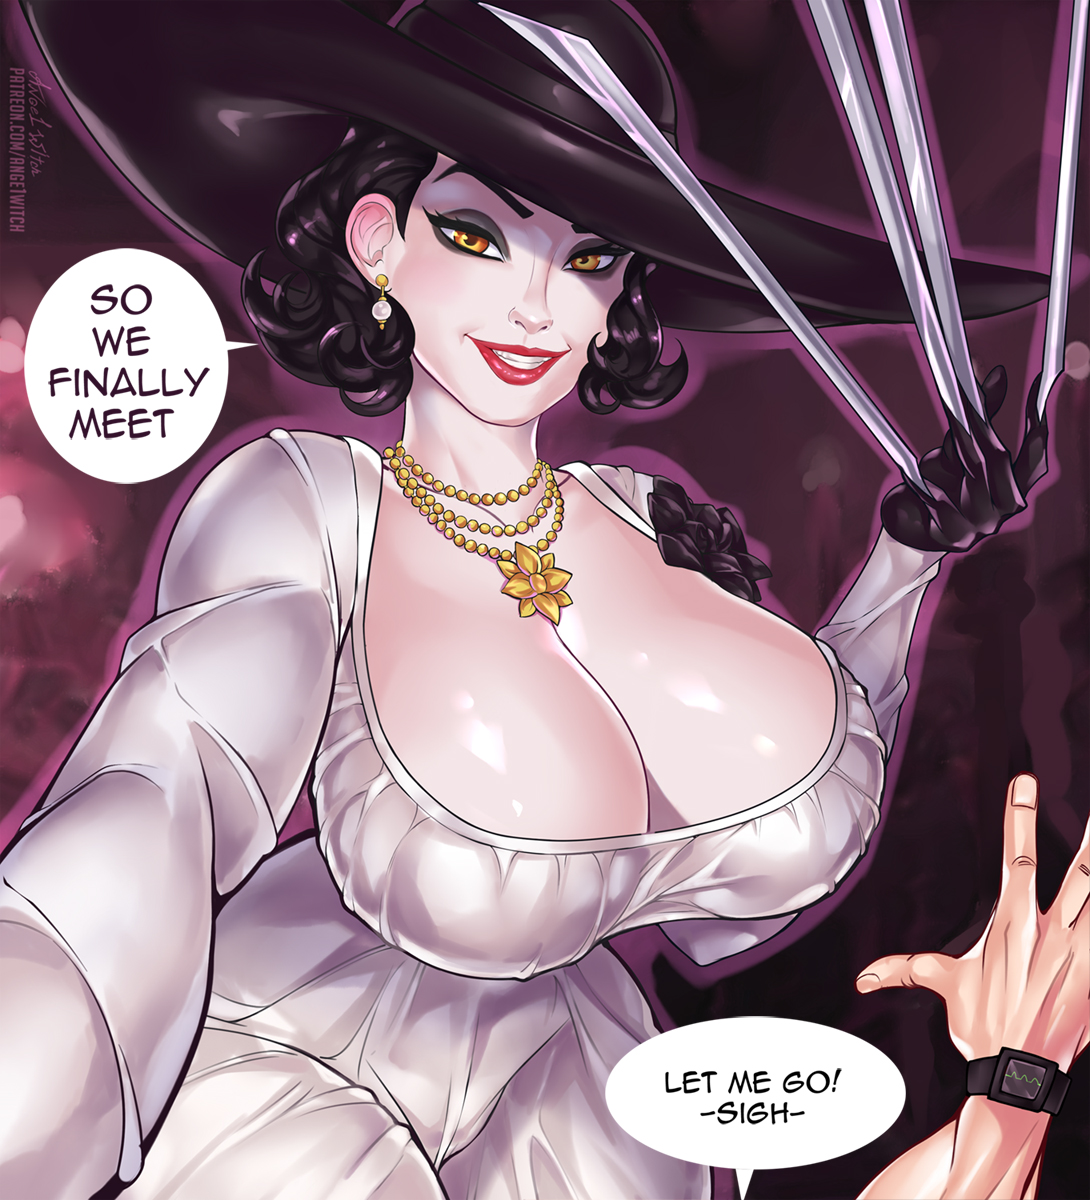 Ange1witch - Ethan Winters Alcina Dimitrescu Resident Evil 8 Village hentai 1